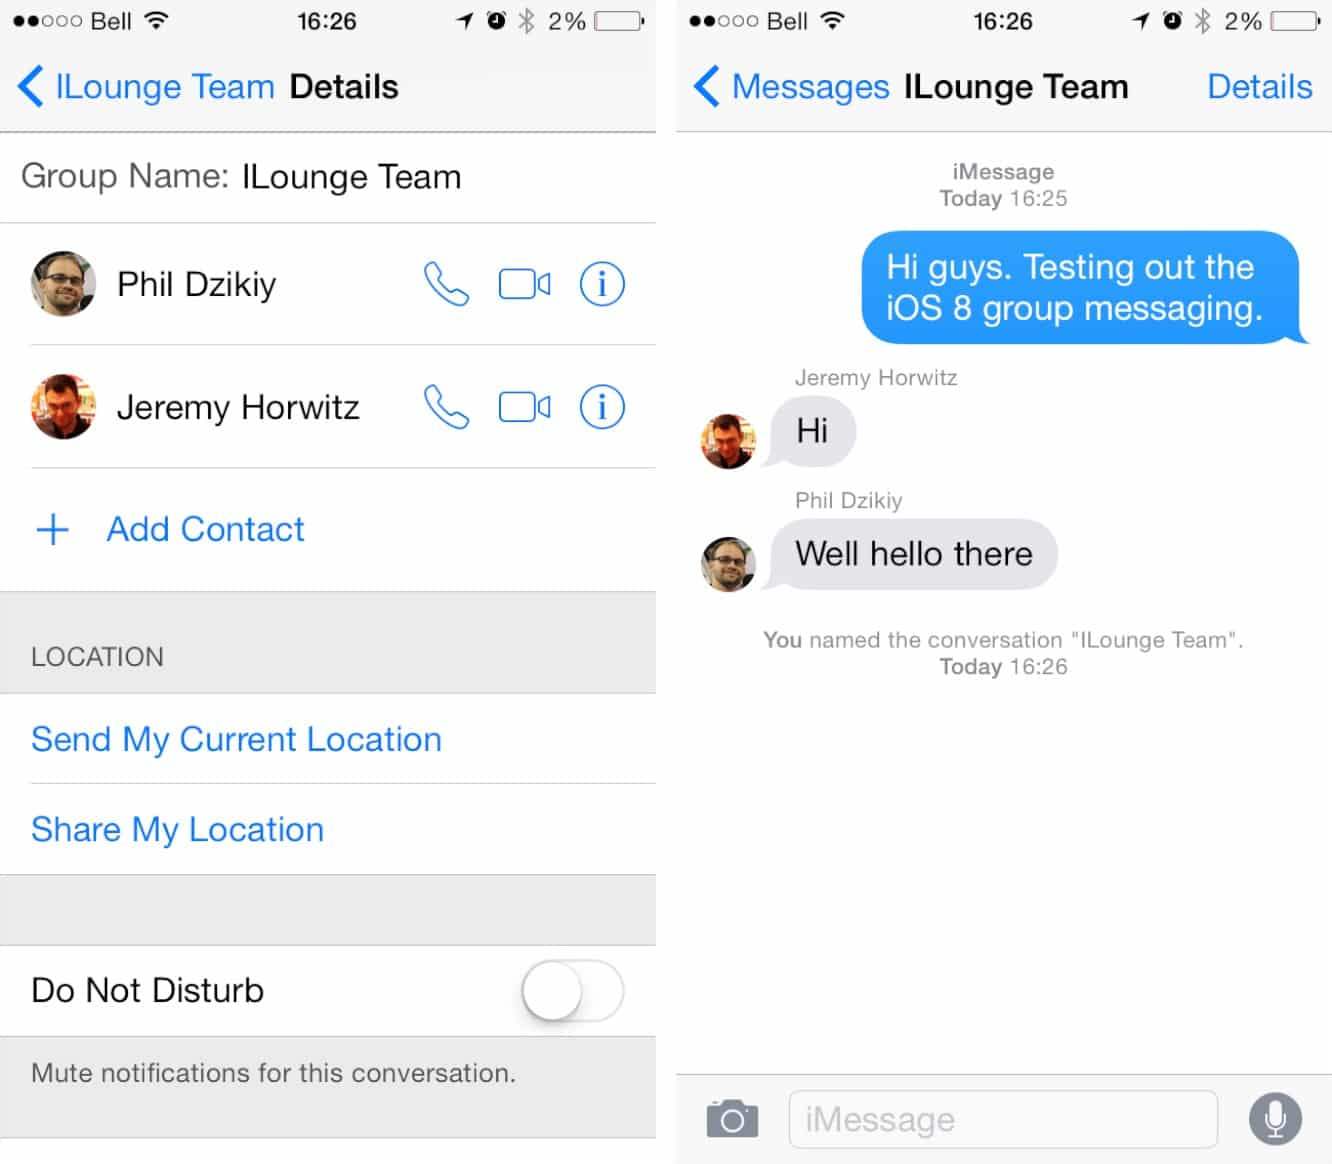 Muting Conversations in Messages